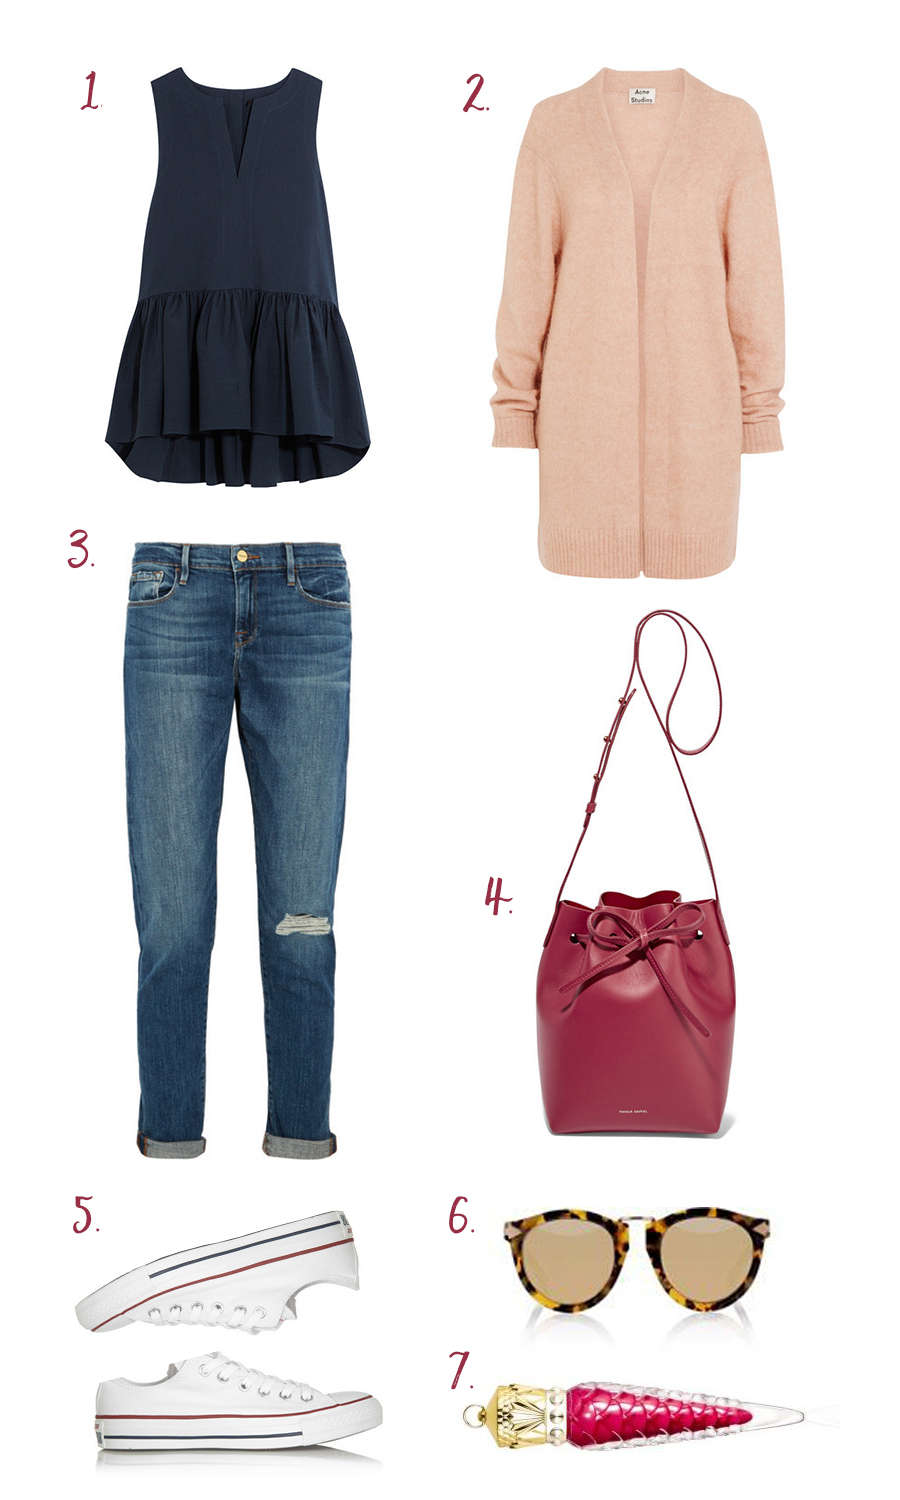 blue-med-skinny-jeans-blue-navy-top-peplum-peach-cardiganl-white-shoe-sneakers-red-bag-bucket-sun-howtowear-fashion-style-outfit-spring-summer-weekend.jpg